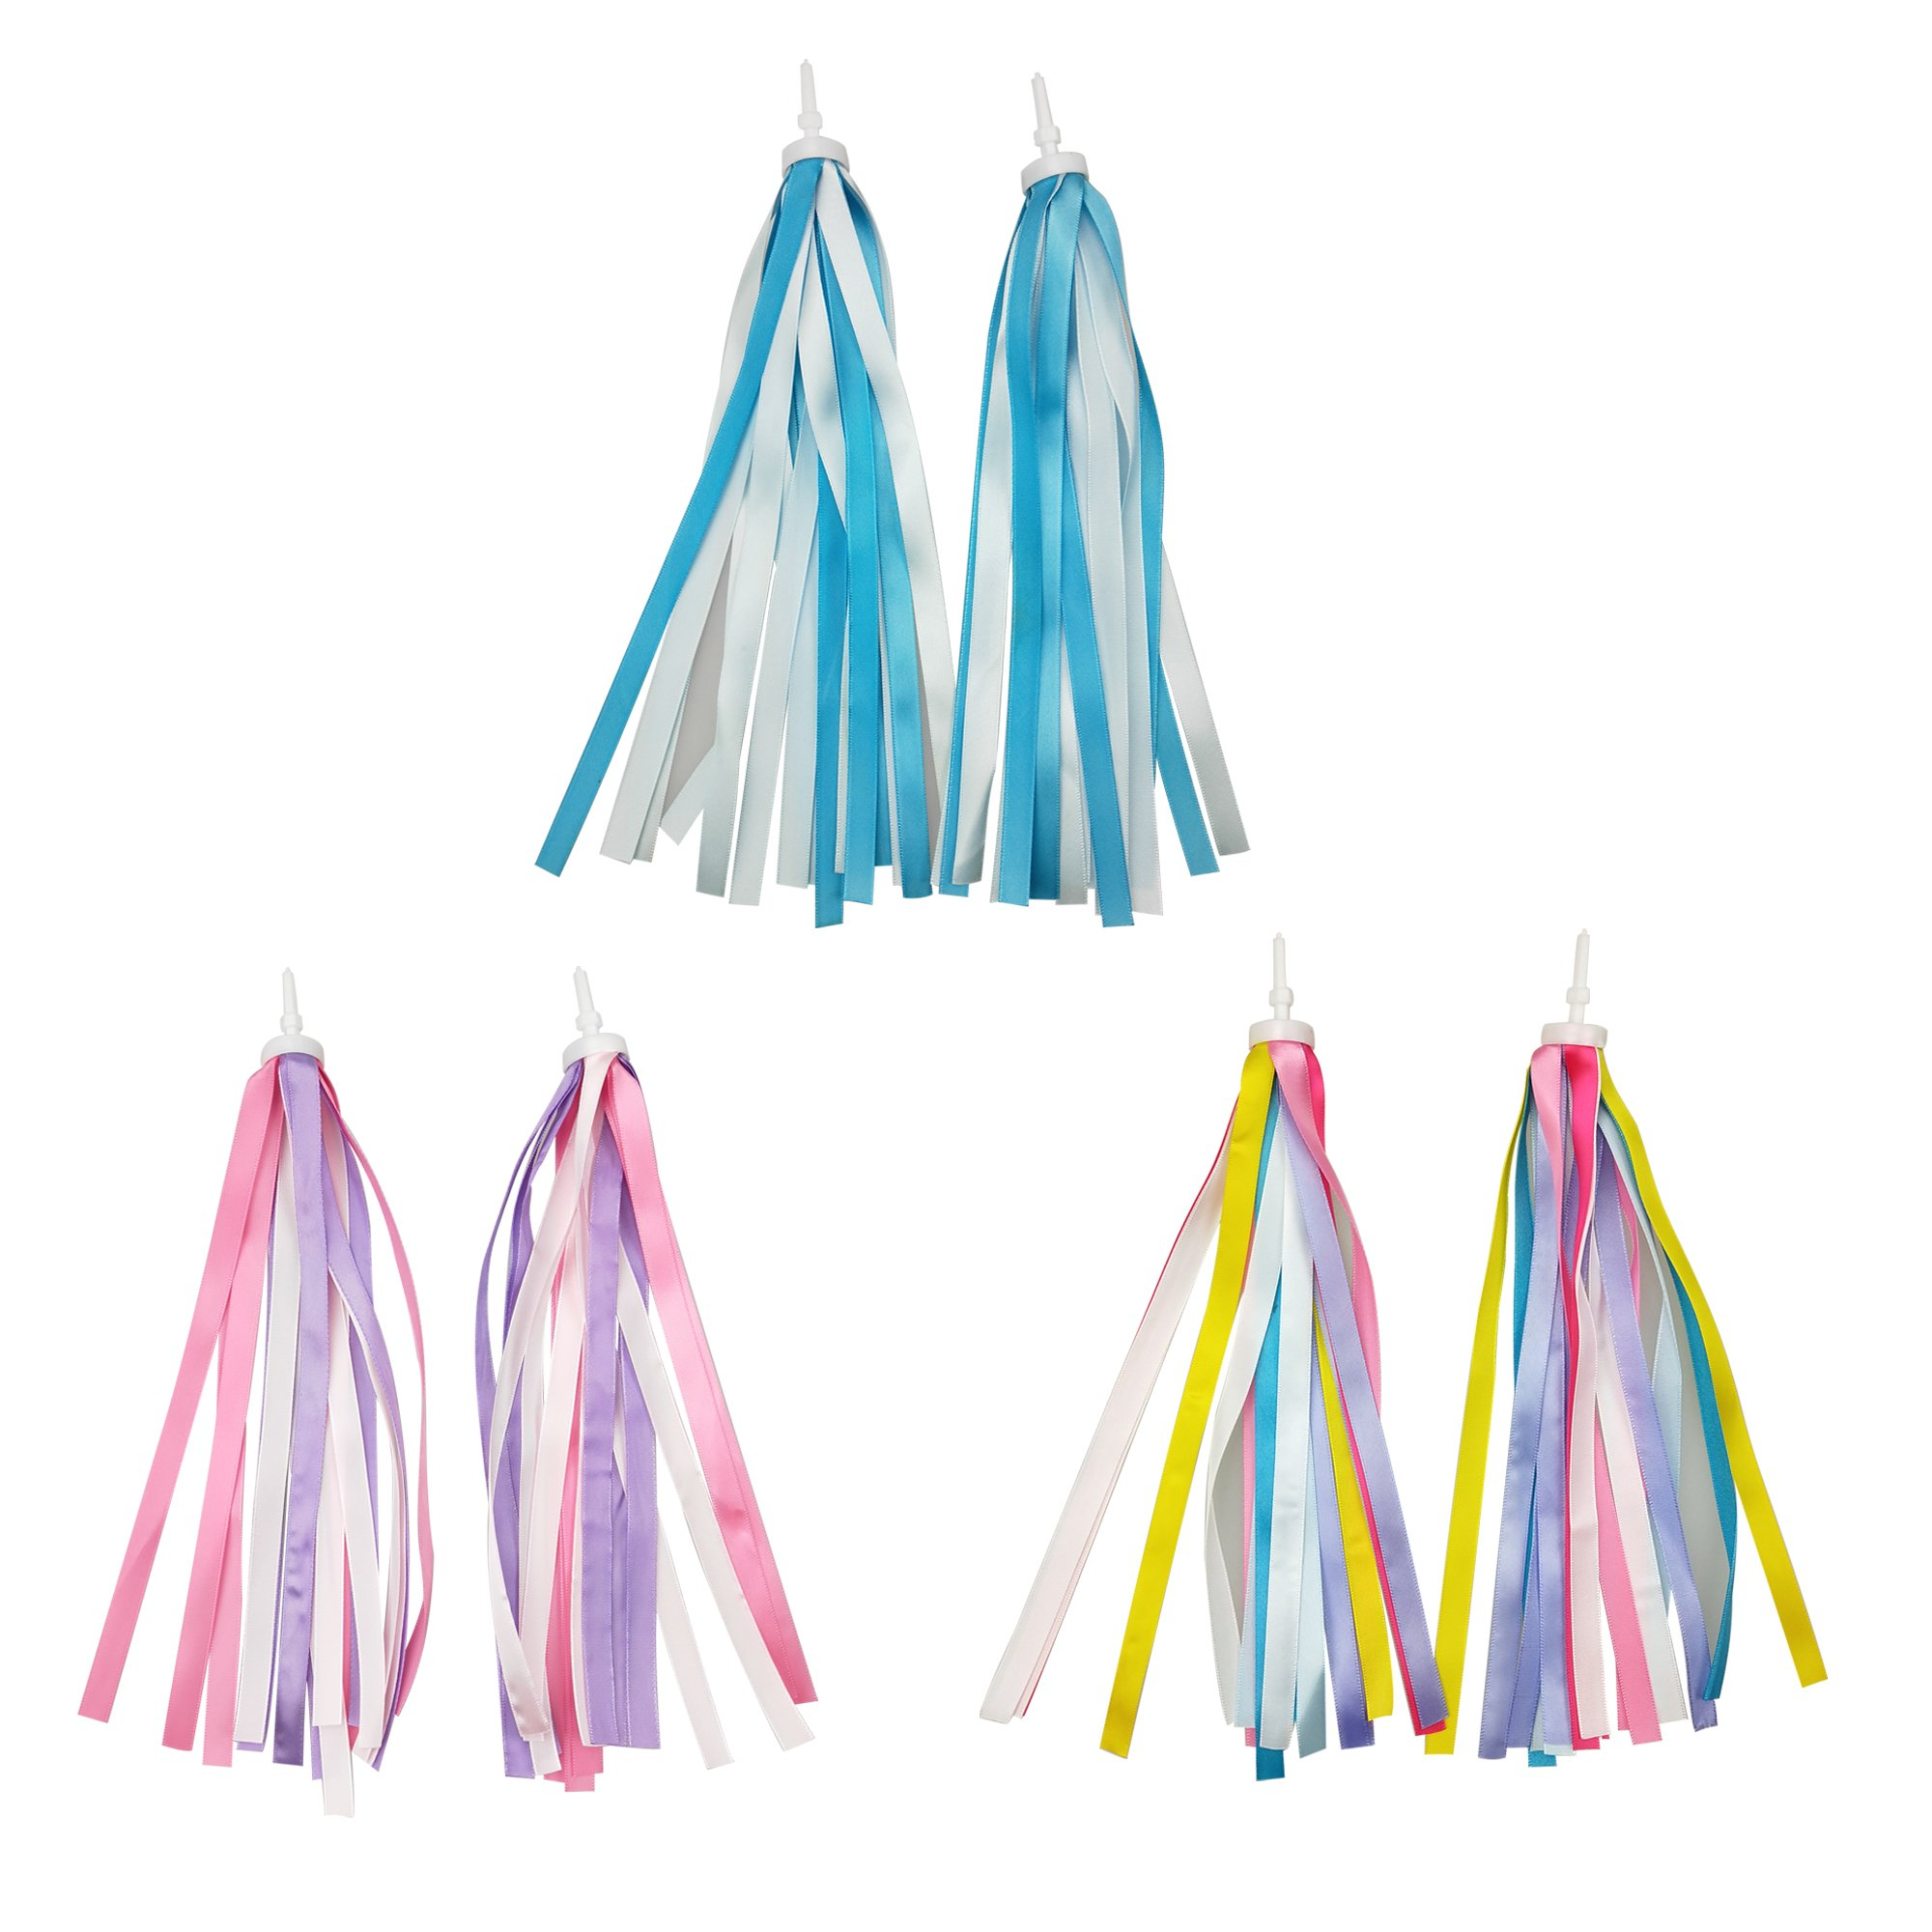 SkyCooool 3 Pairs 6 Pcs Kids Bike Handlebar Streamers Colorful Ribbons Tassel for Girls Boys Scooter Handgrip